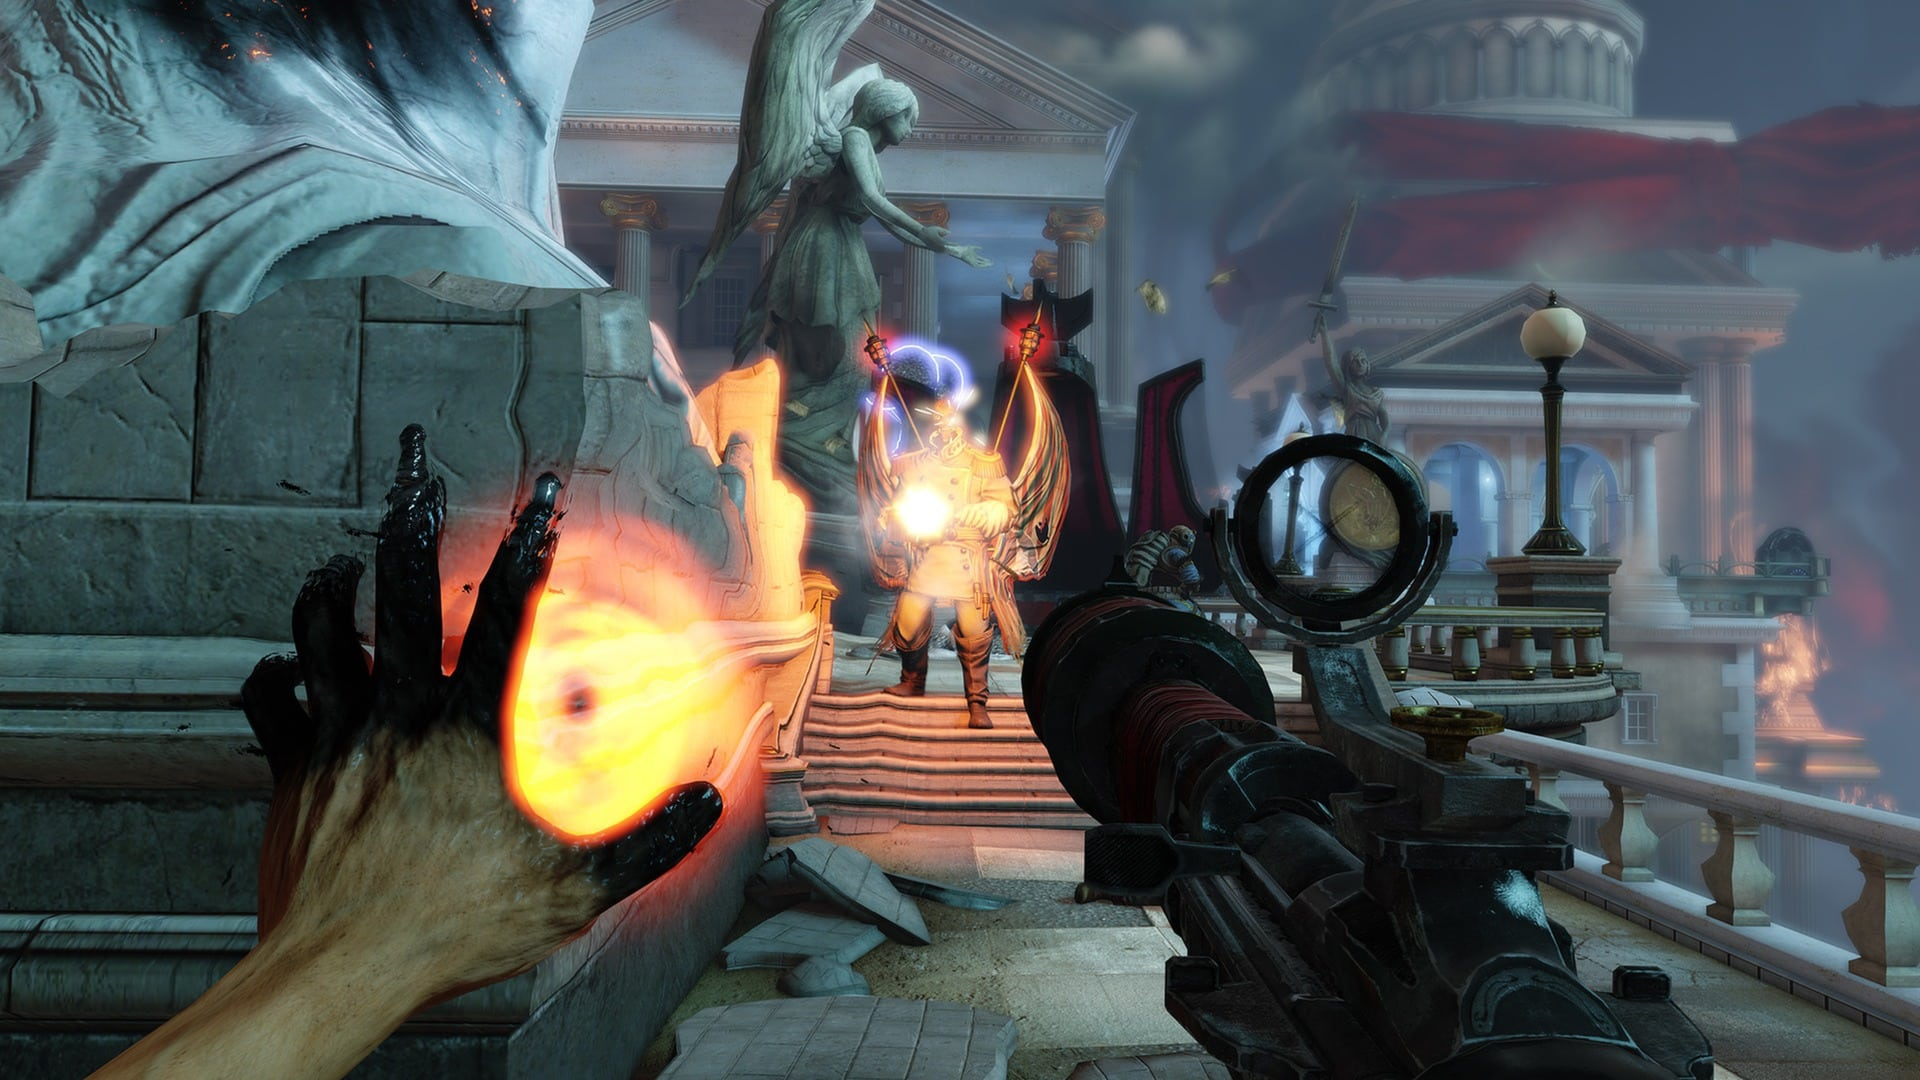 Irrational Games Ken Levine BioShock Infinite is not BioShock 3 with its messy story construction and unrewarding gameplay